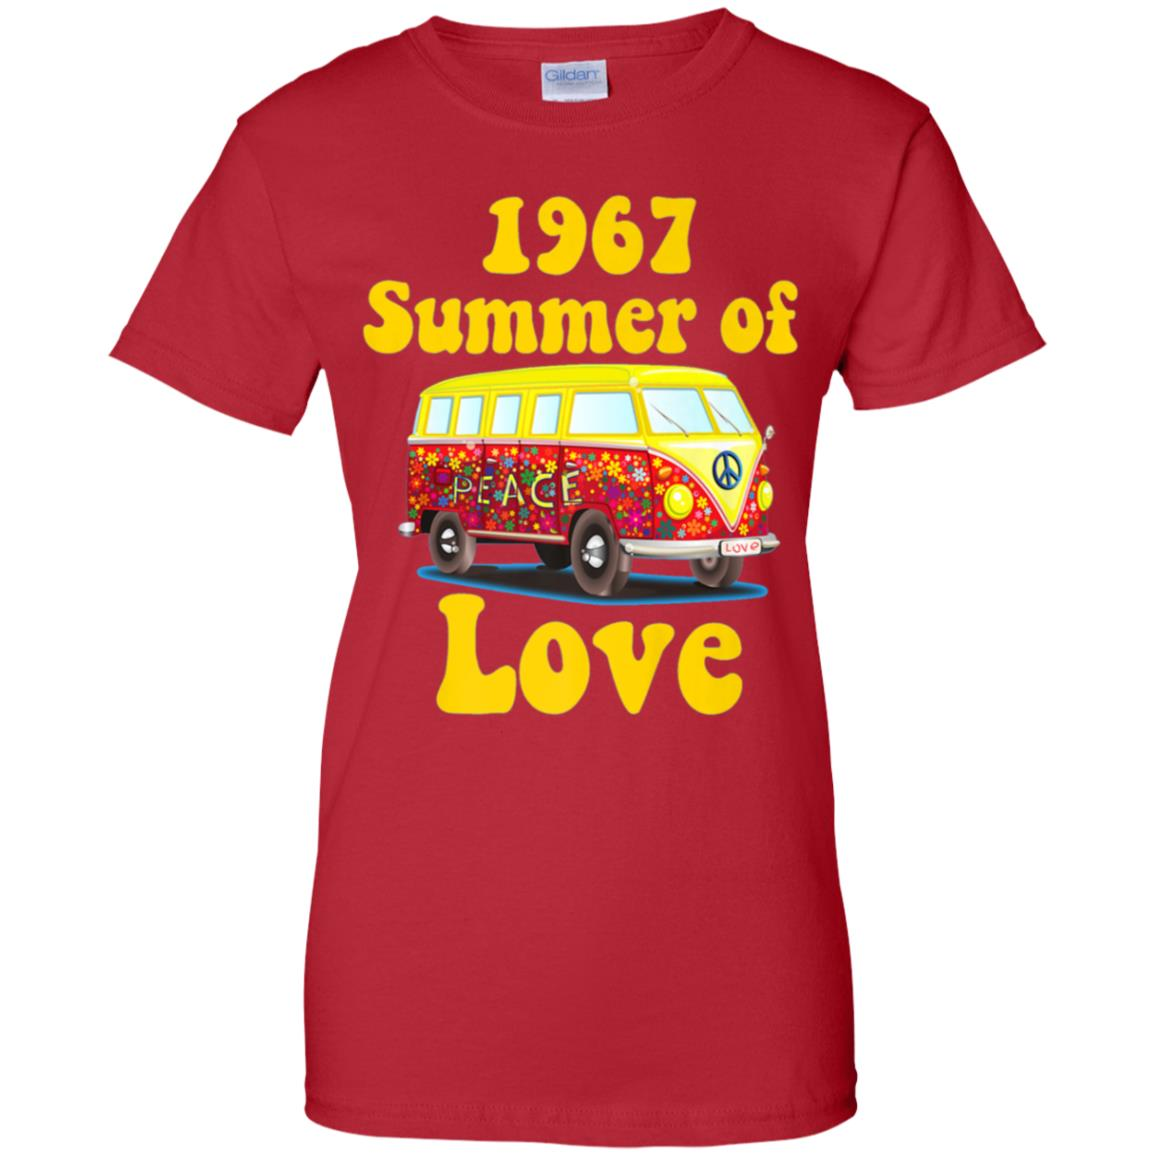 ce363b04b70 1967 summer of love retro tees vintage sixties hippie shirt